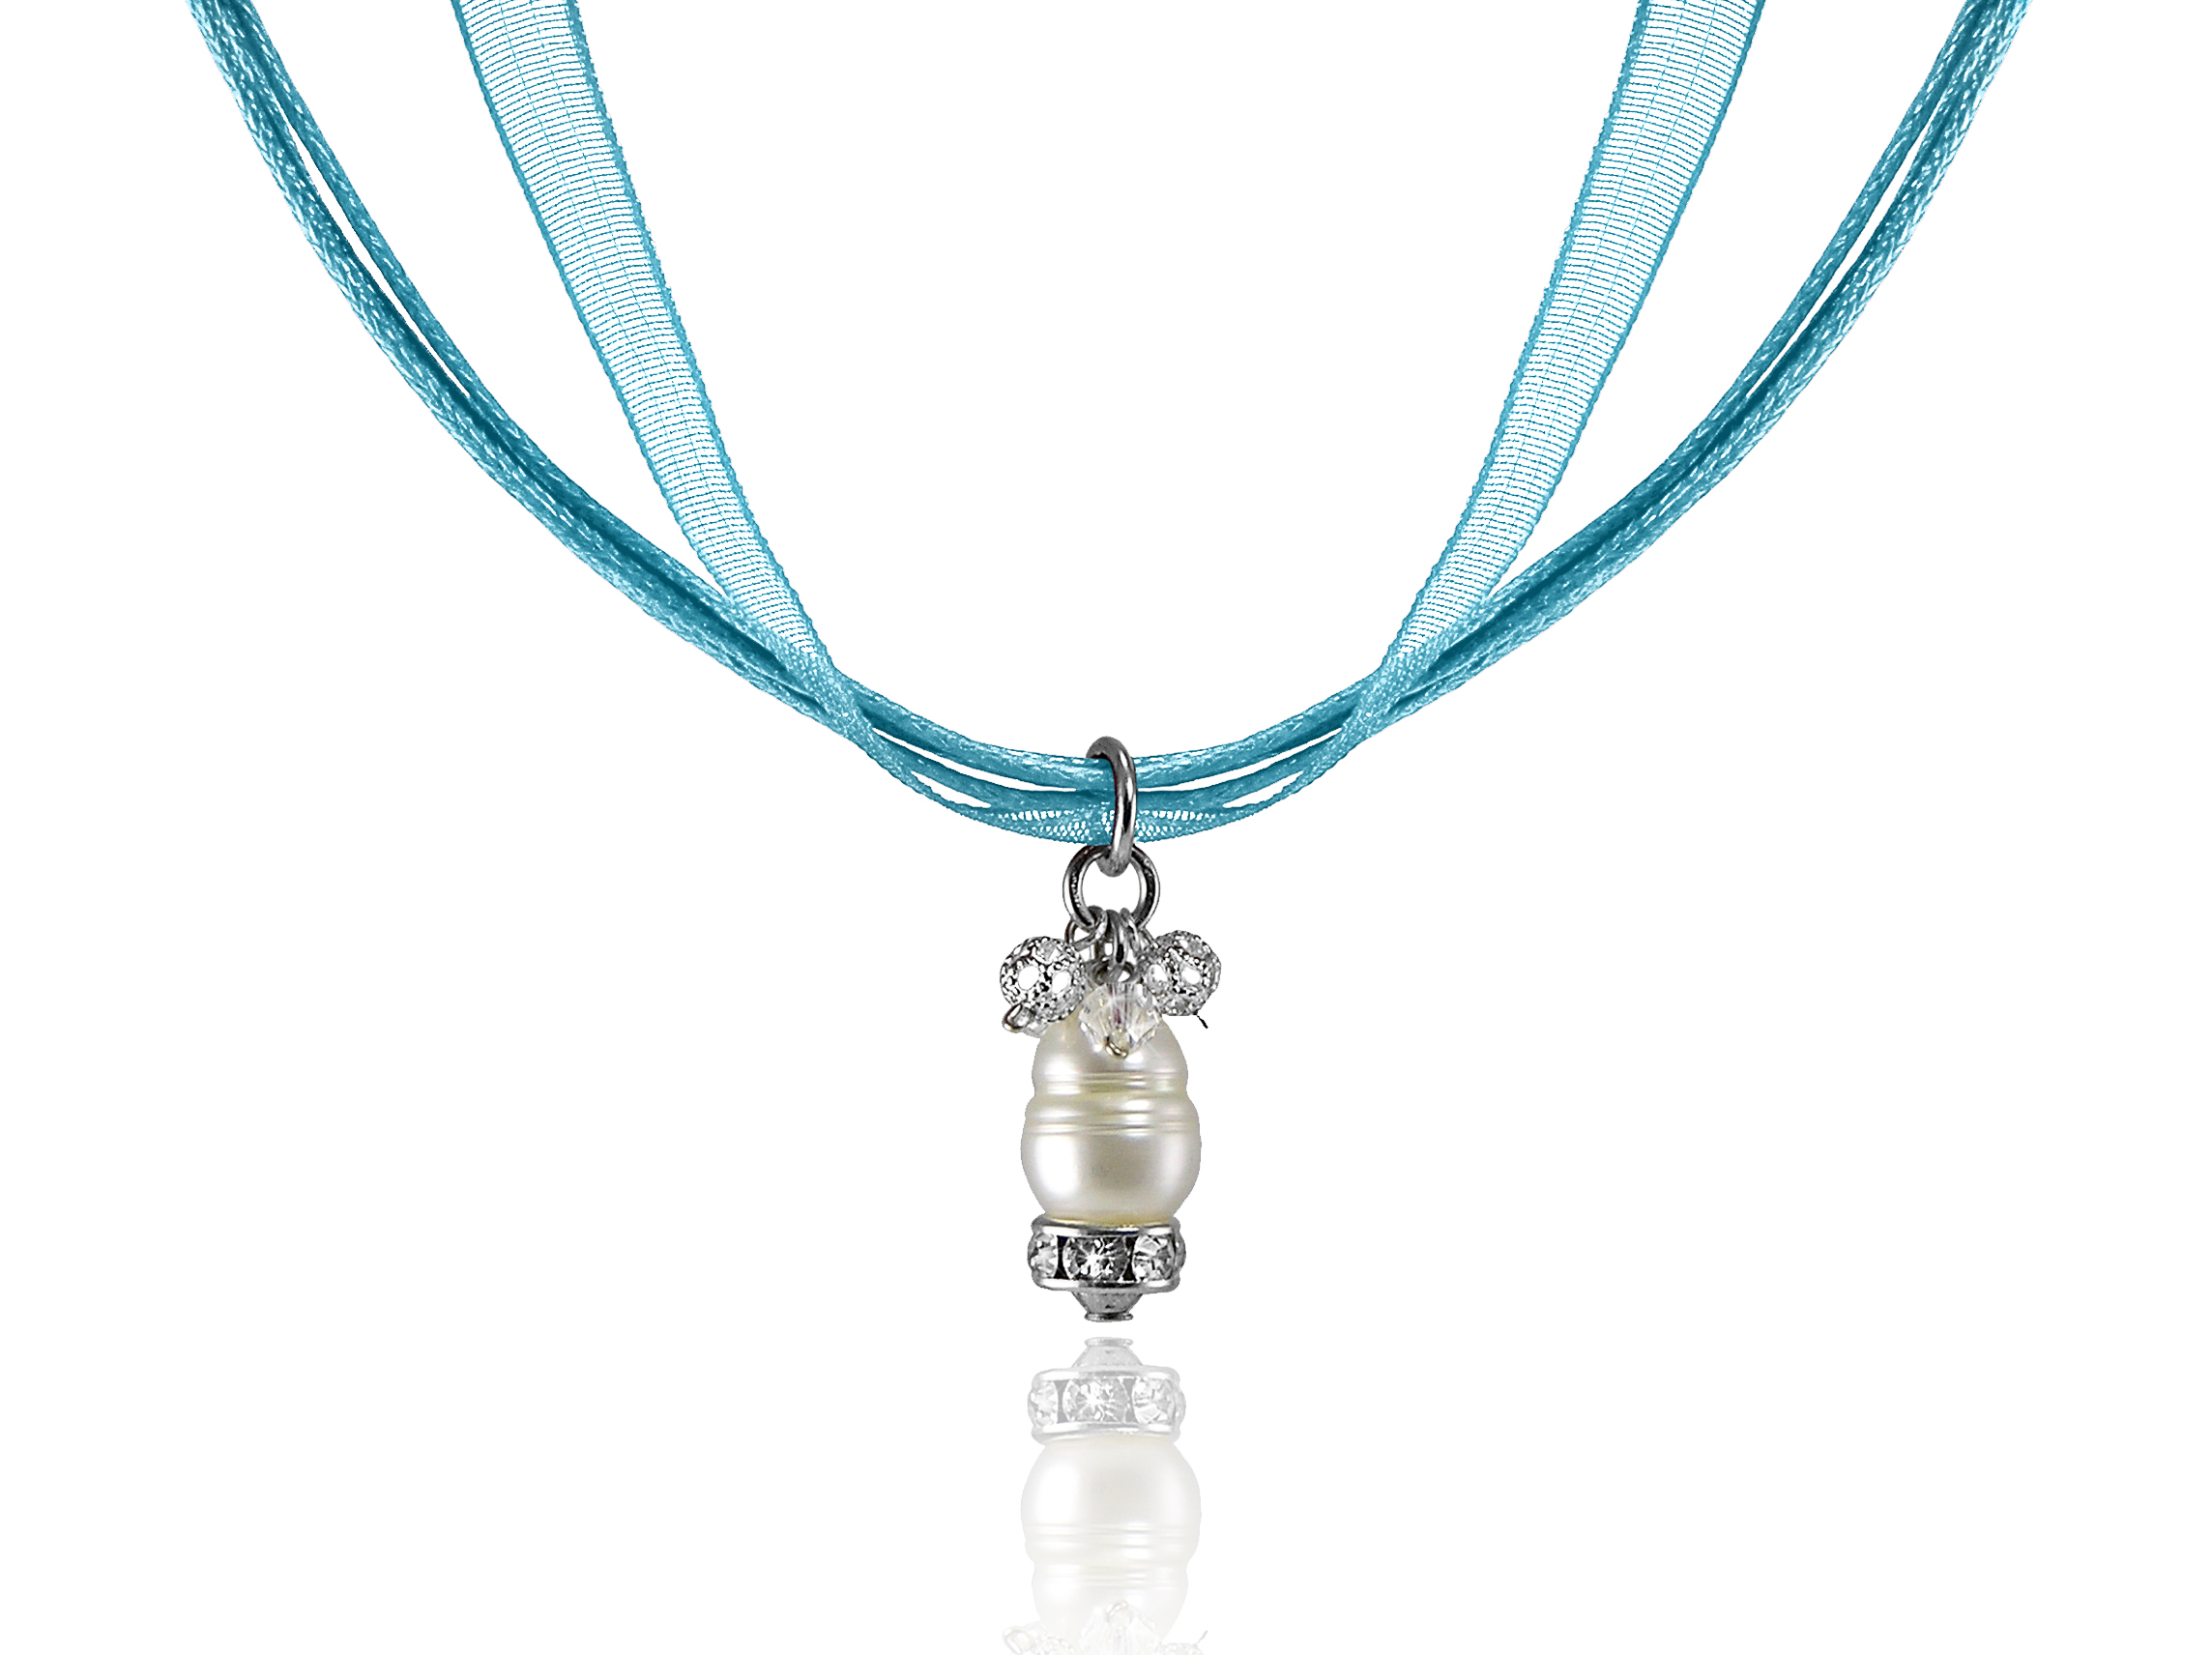 Aqua Ribbon Necklace with Ring Pearl